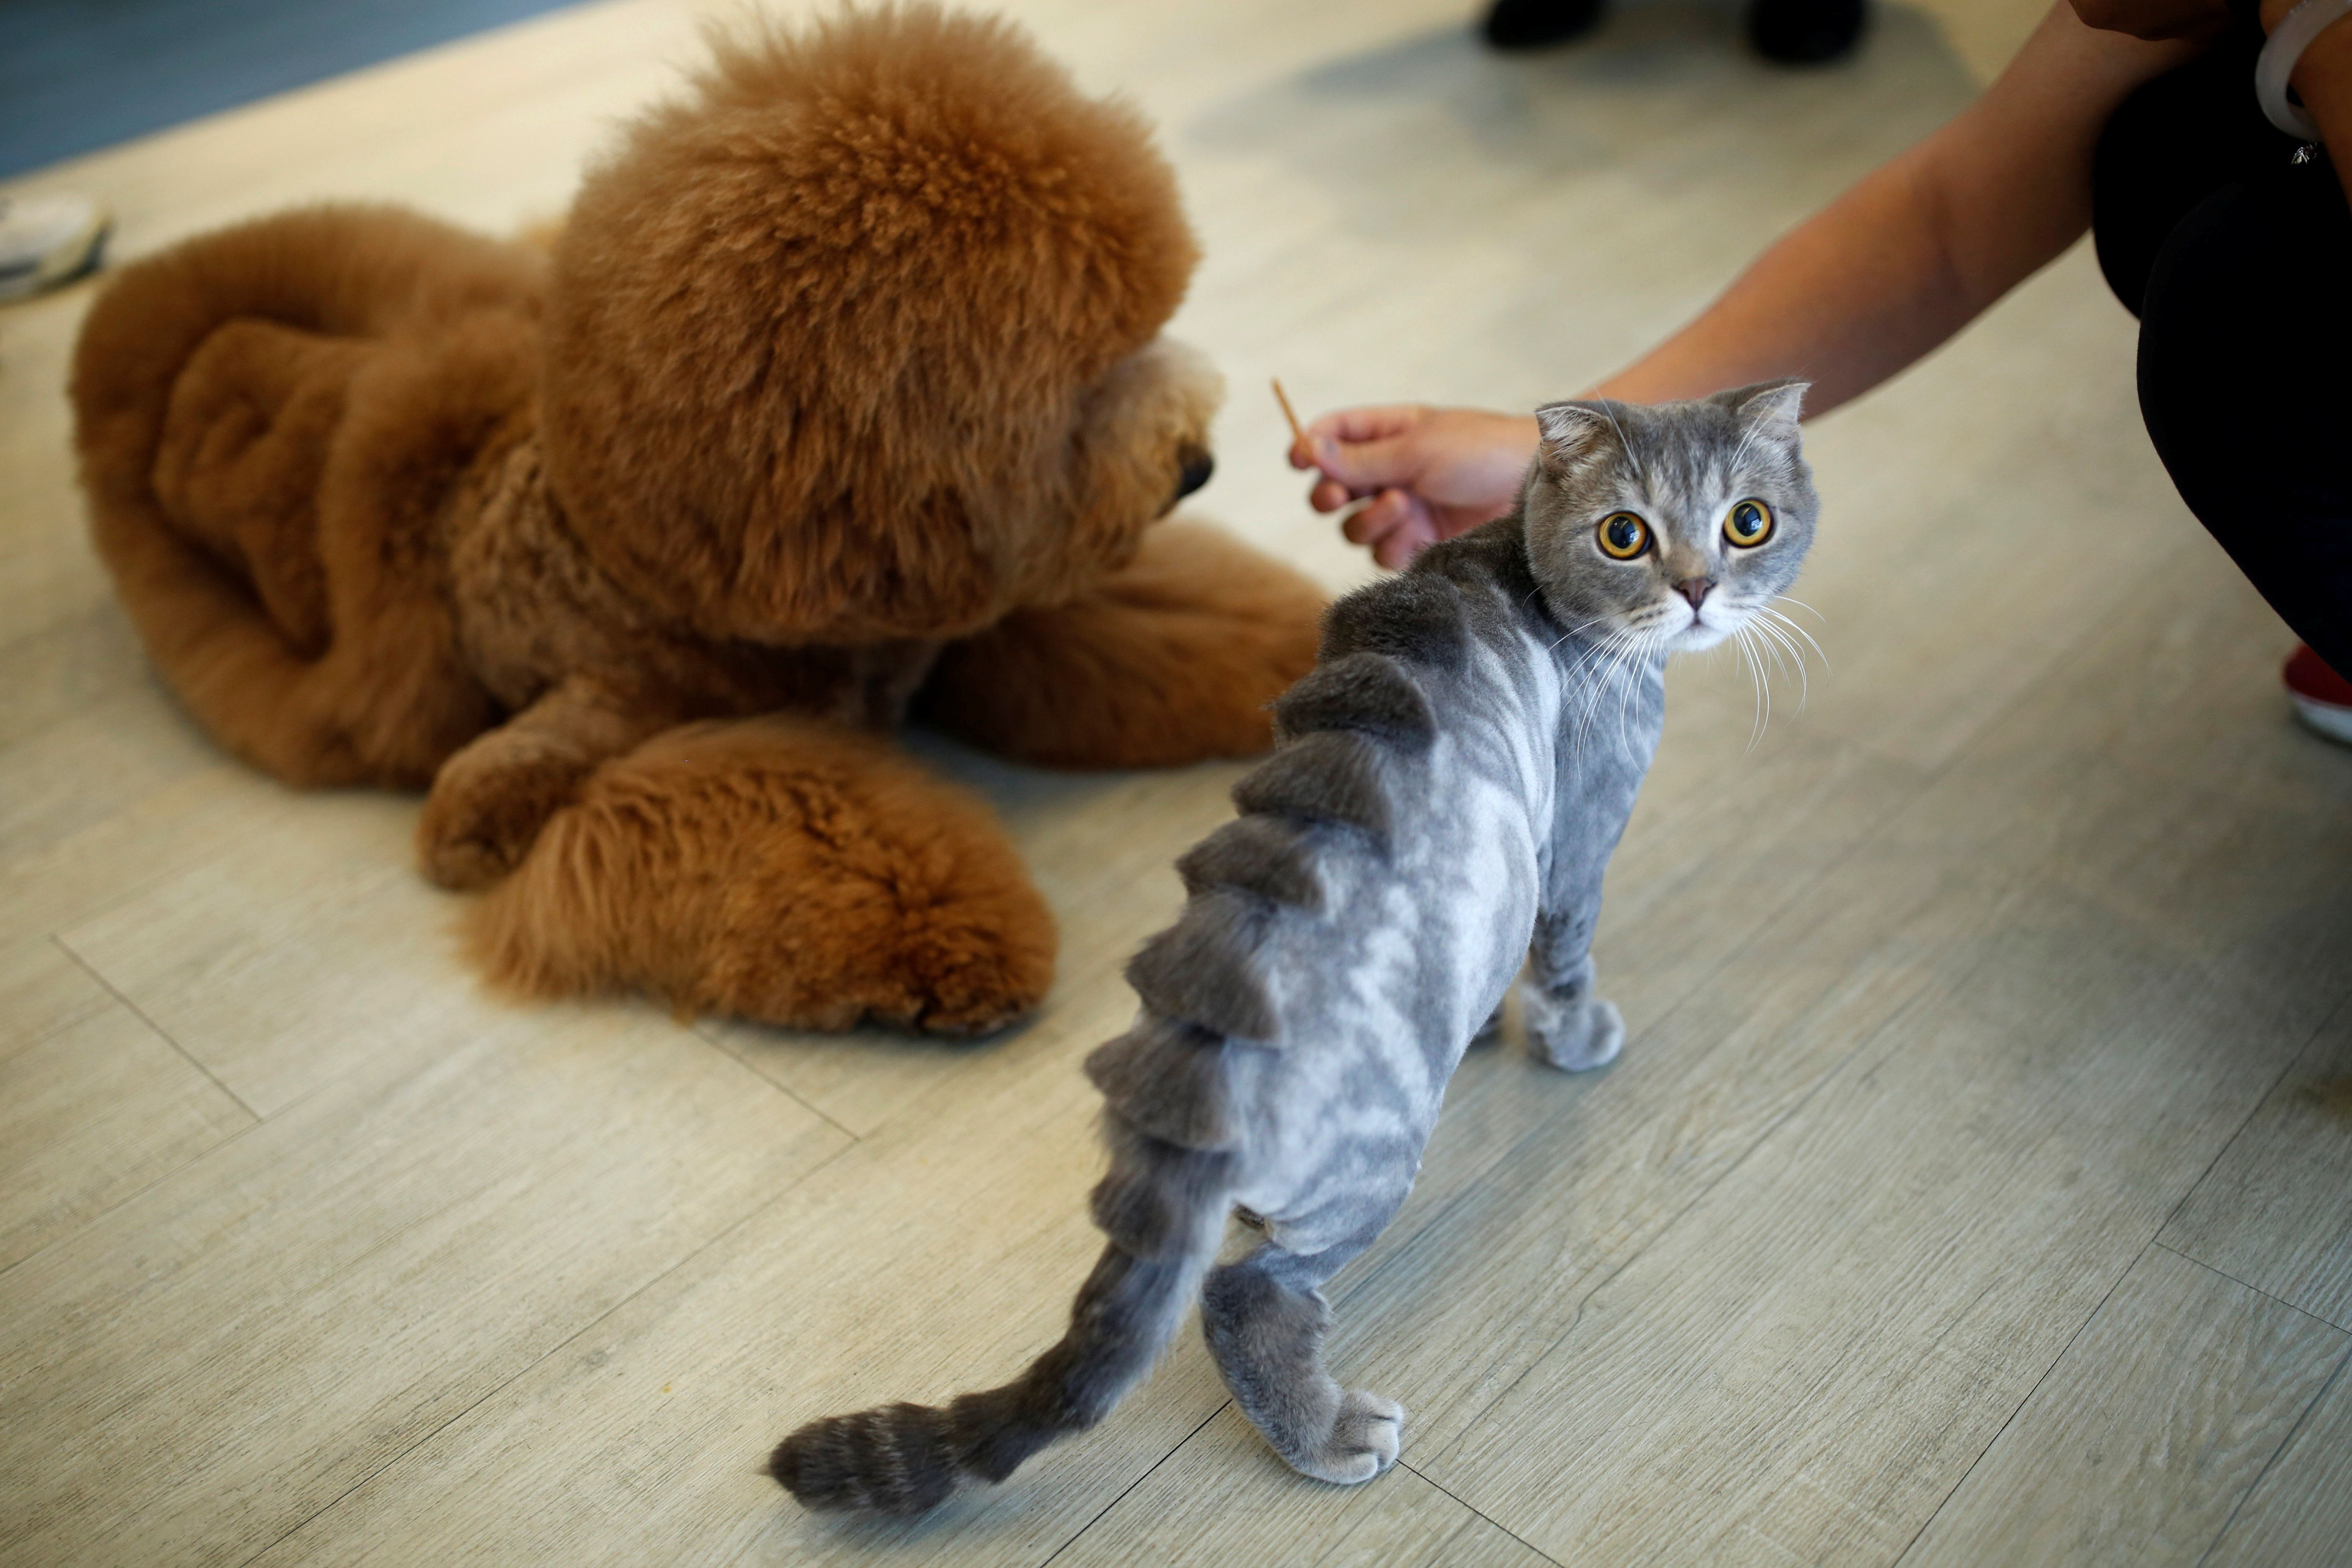 """A cat with a """"stegosaurus spine""""€ design cut into its fur"""